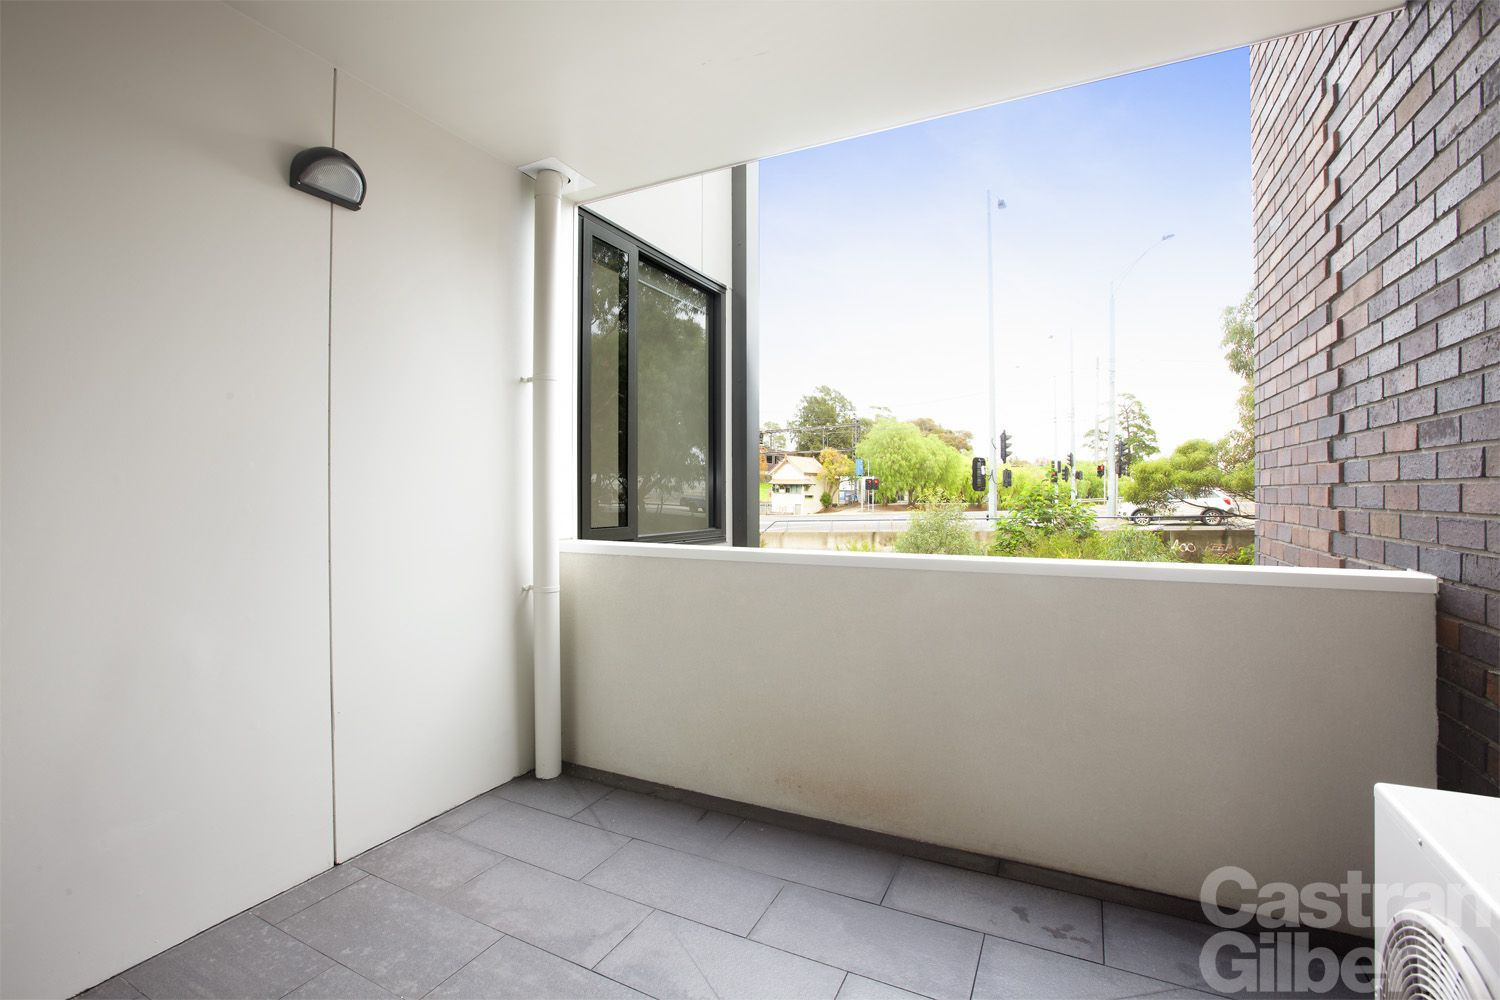 12/4 Wills Street, Glen Iris VIC 3146, Image 2